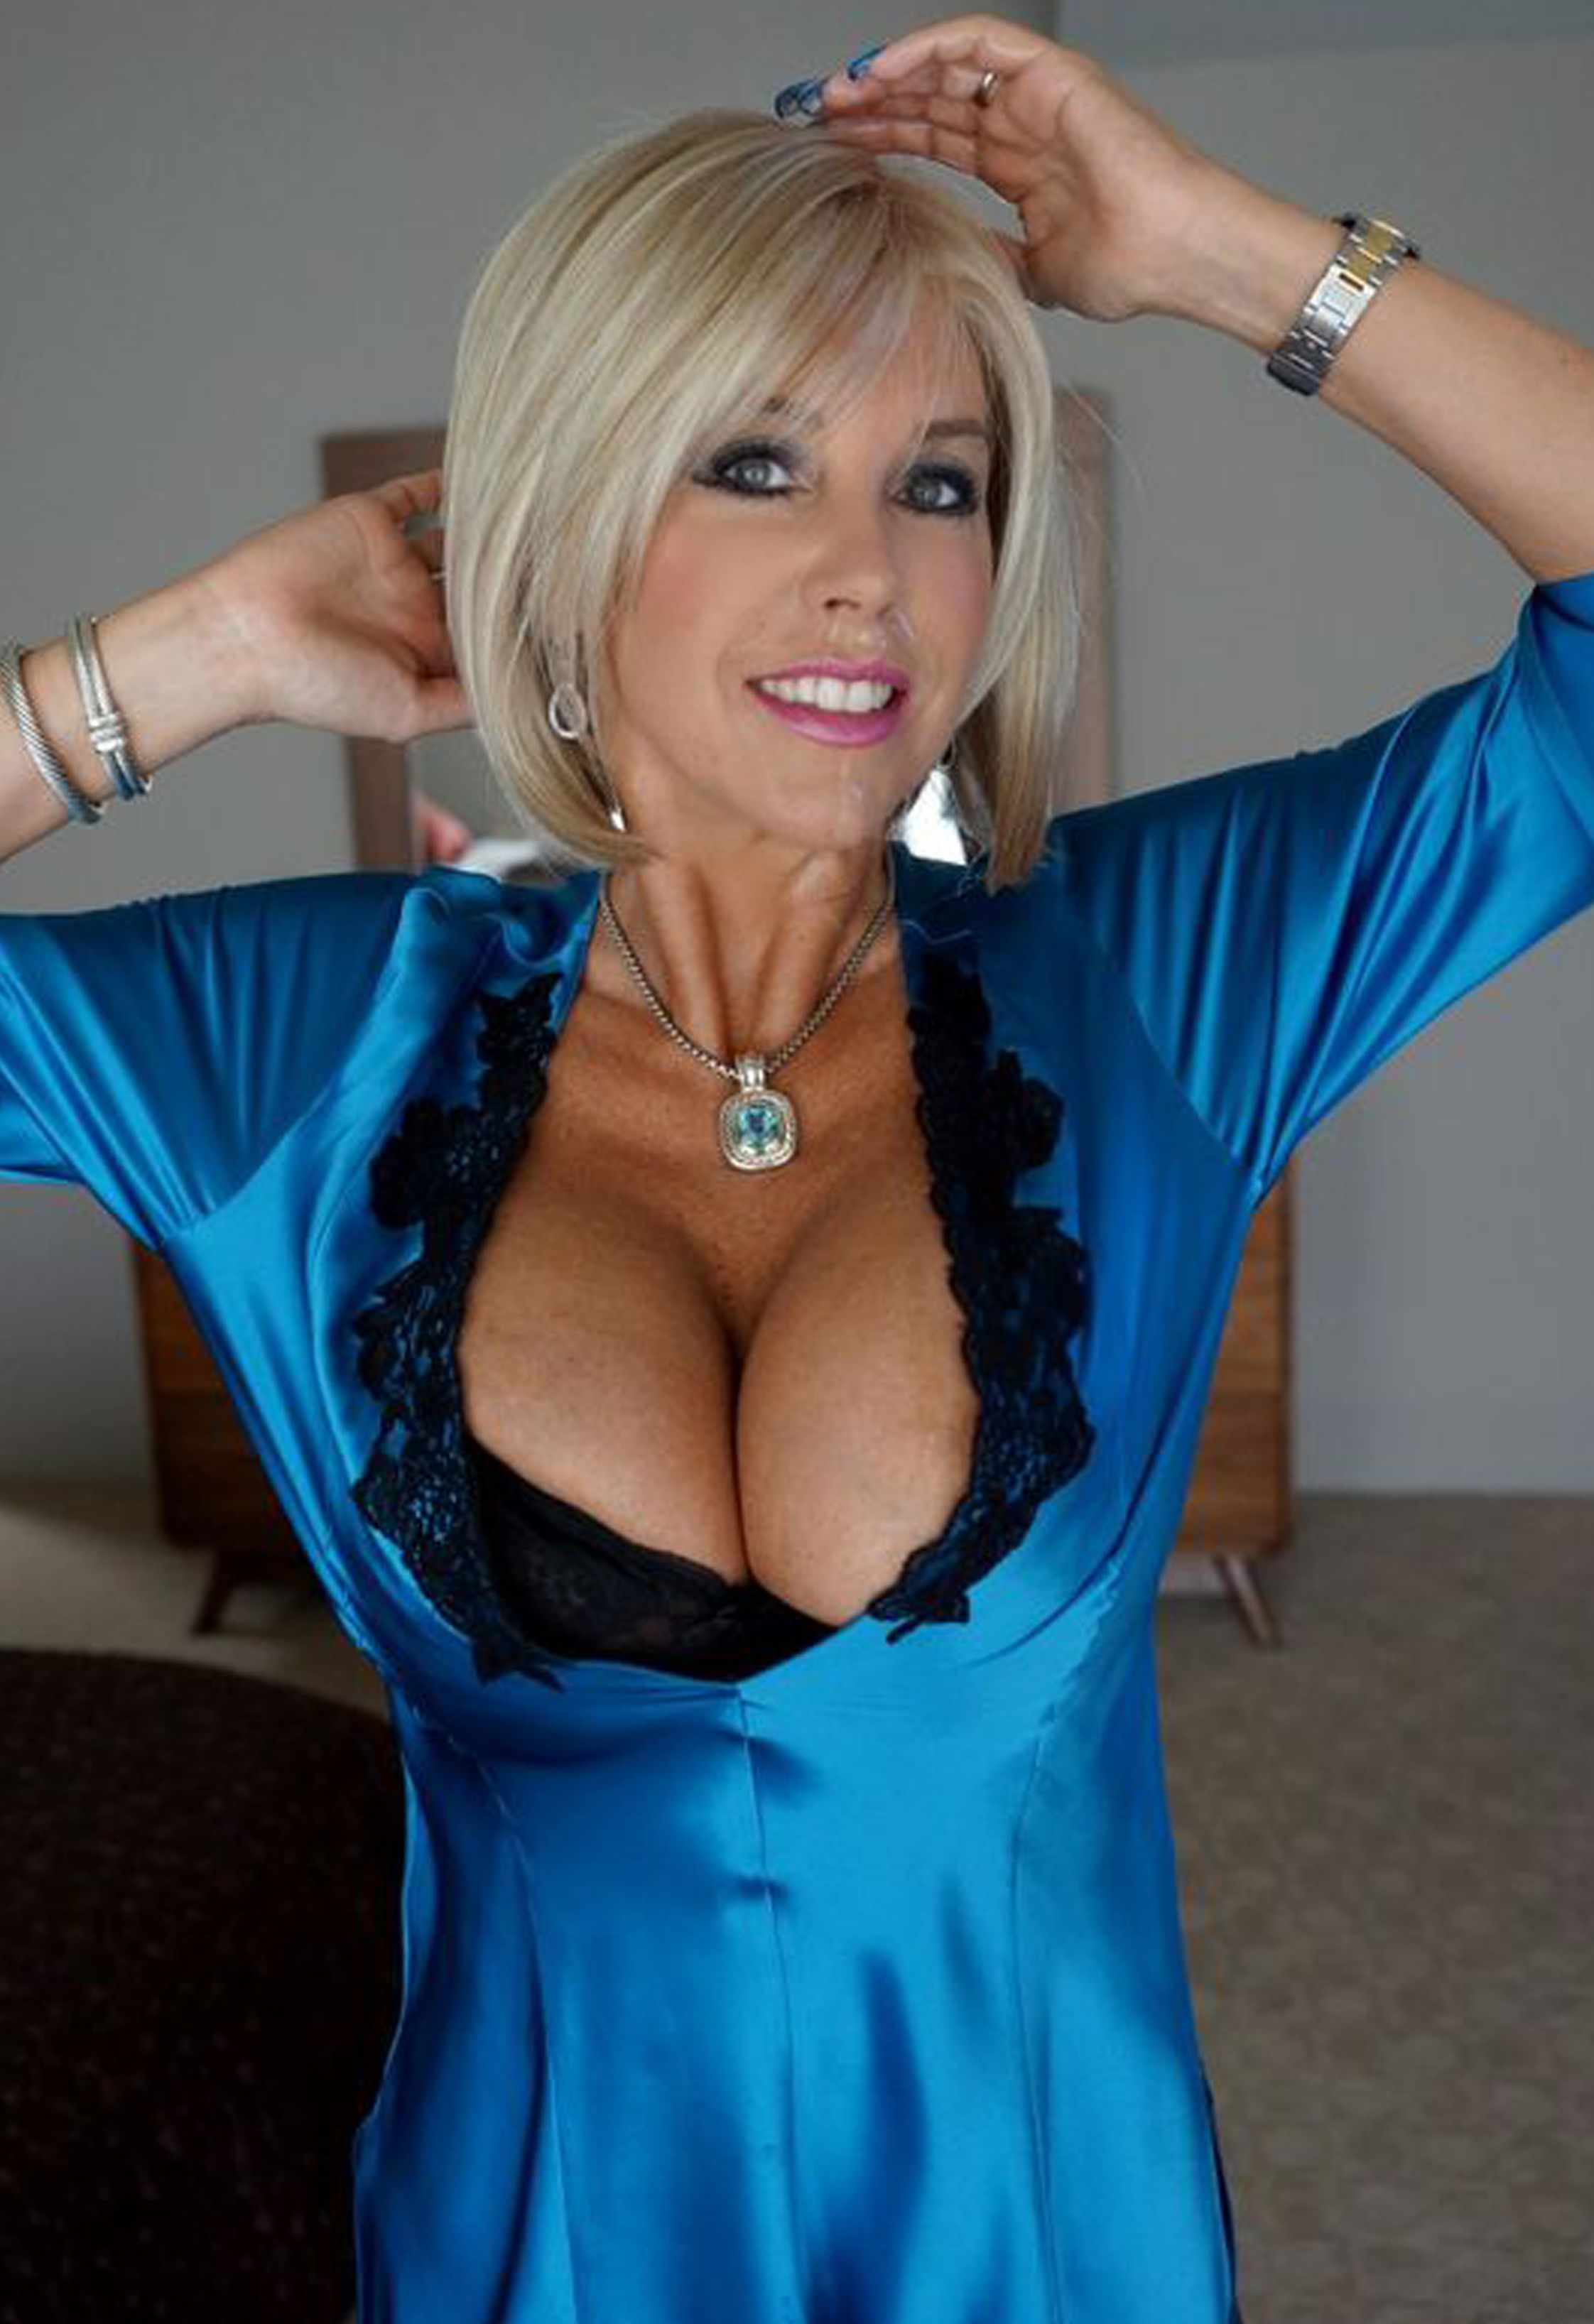 Soccer milf webcam boobs